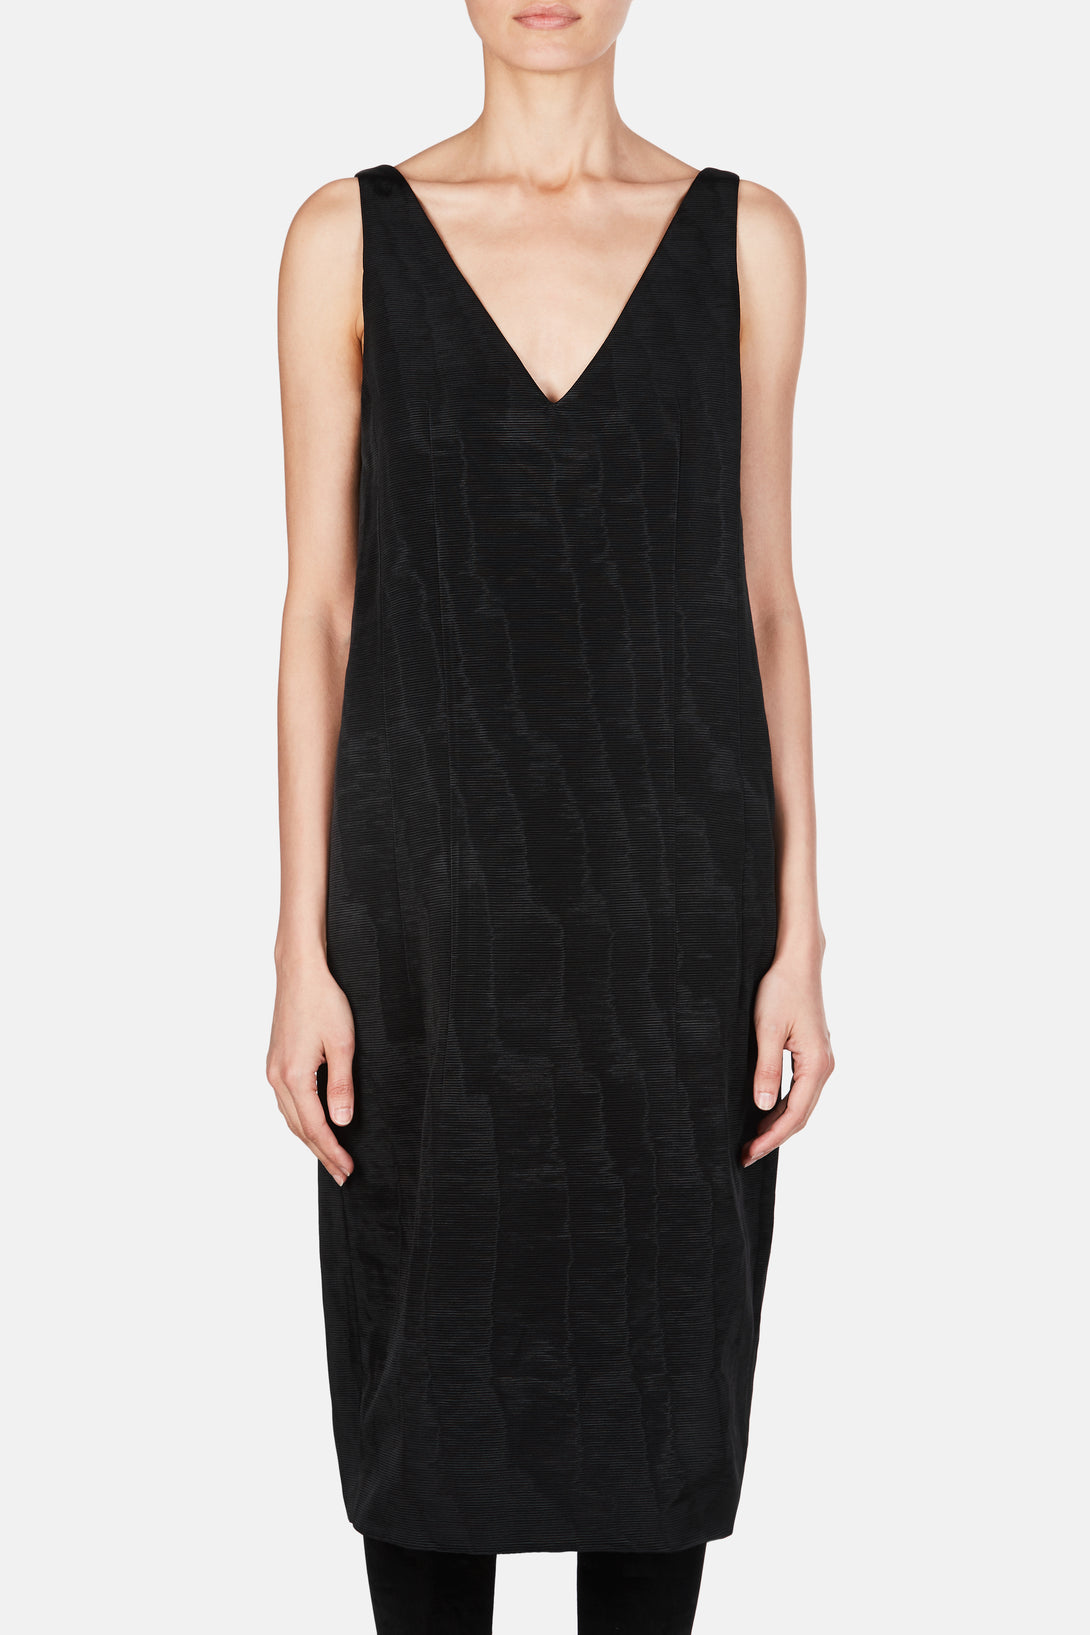 Dress 67 Deep V Cocoon Dress - Black